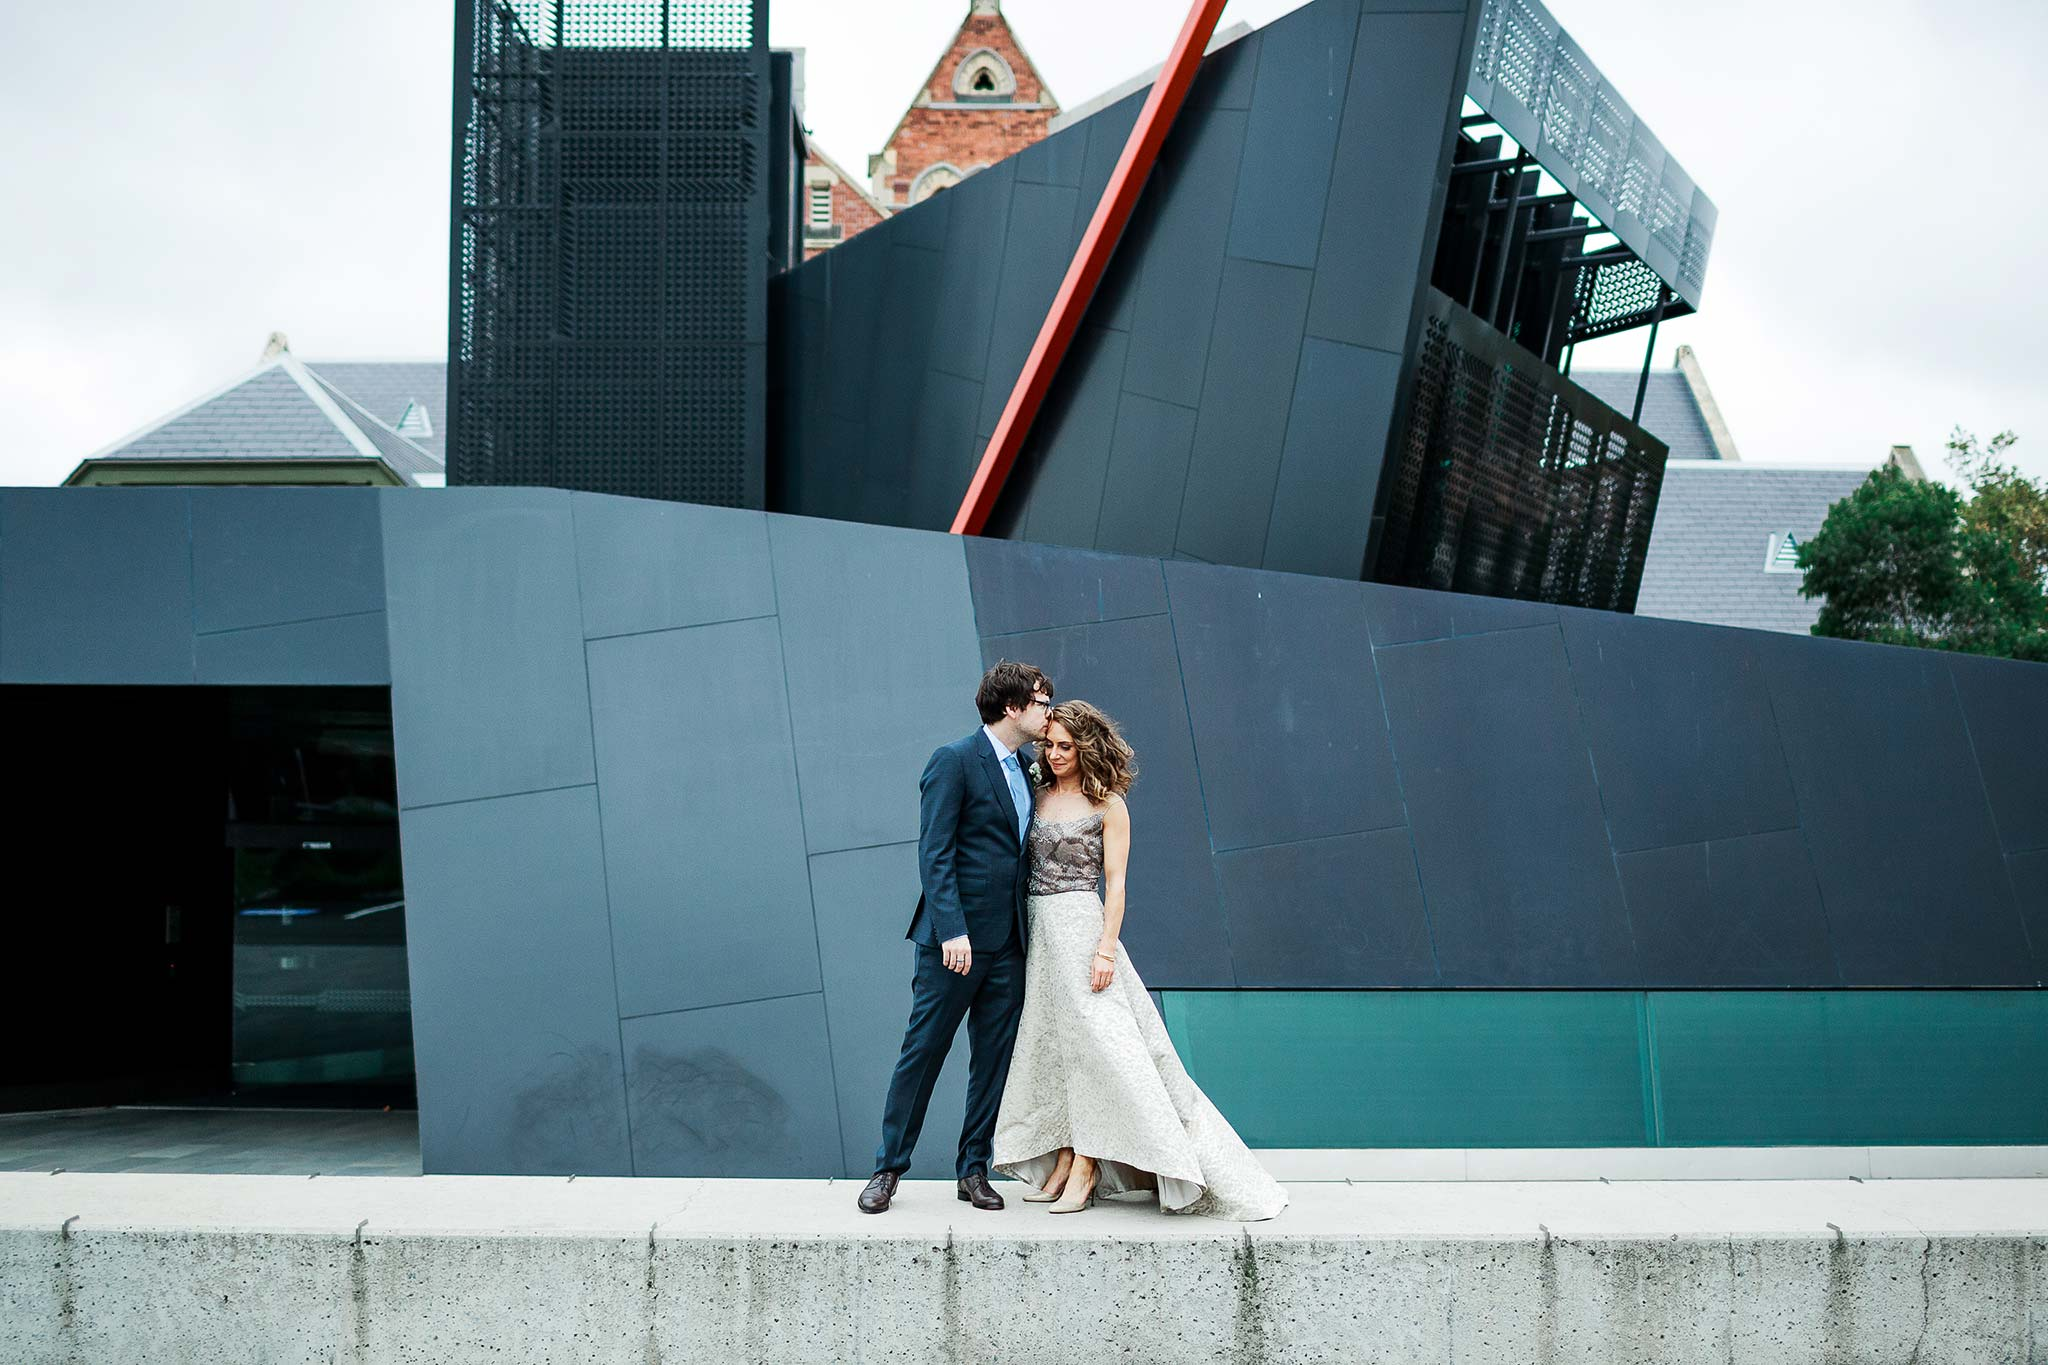 North-Melbourne-Bride-Groom-Portrait-photographer